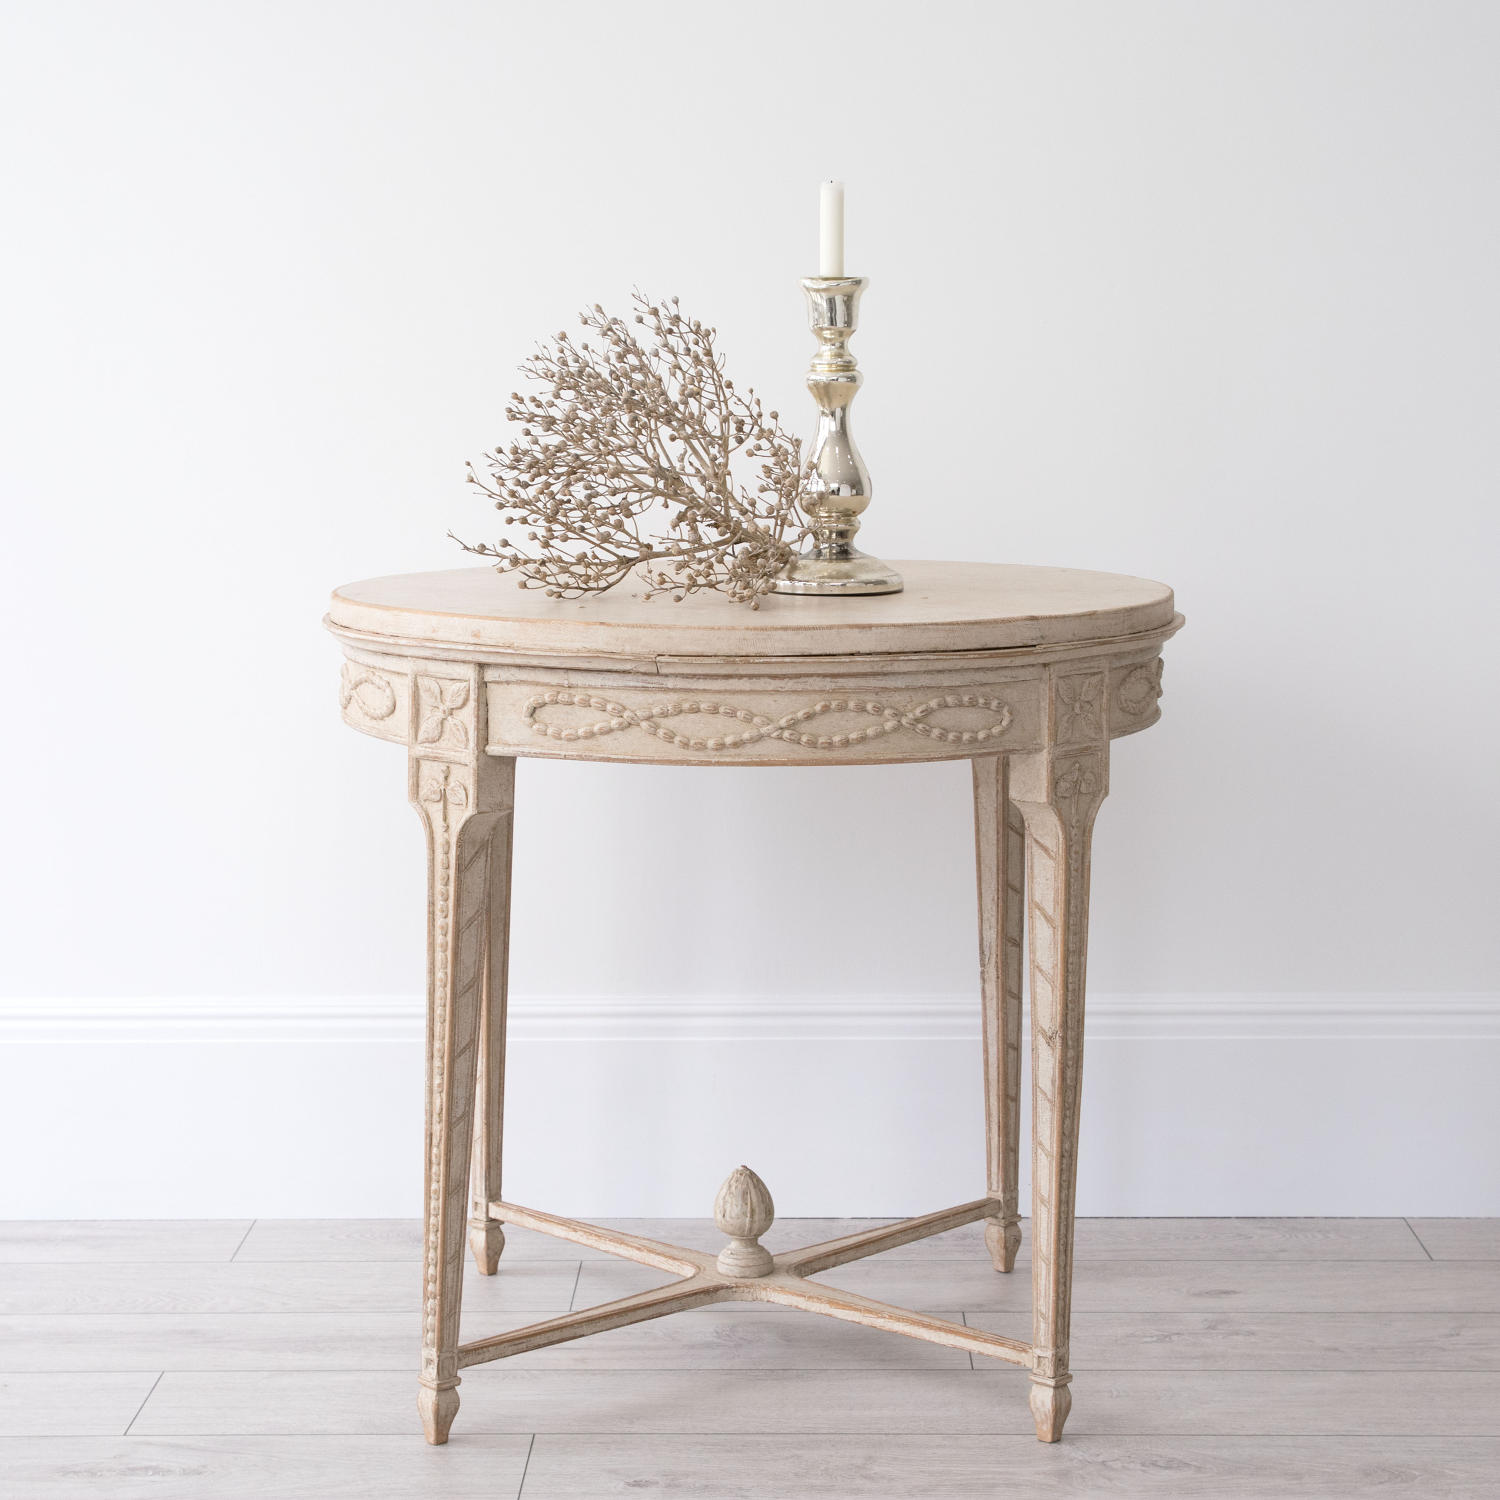 BEAUTIFUL SWEDISH GUSTAVIAN STYLE LAMP TABLE